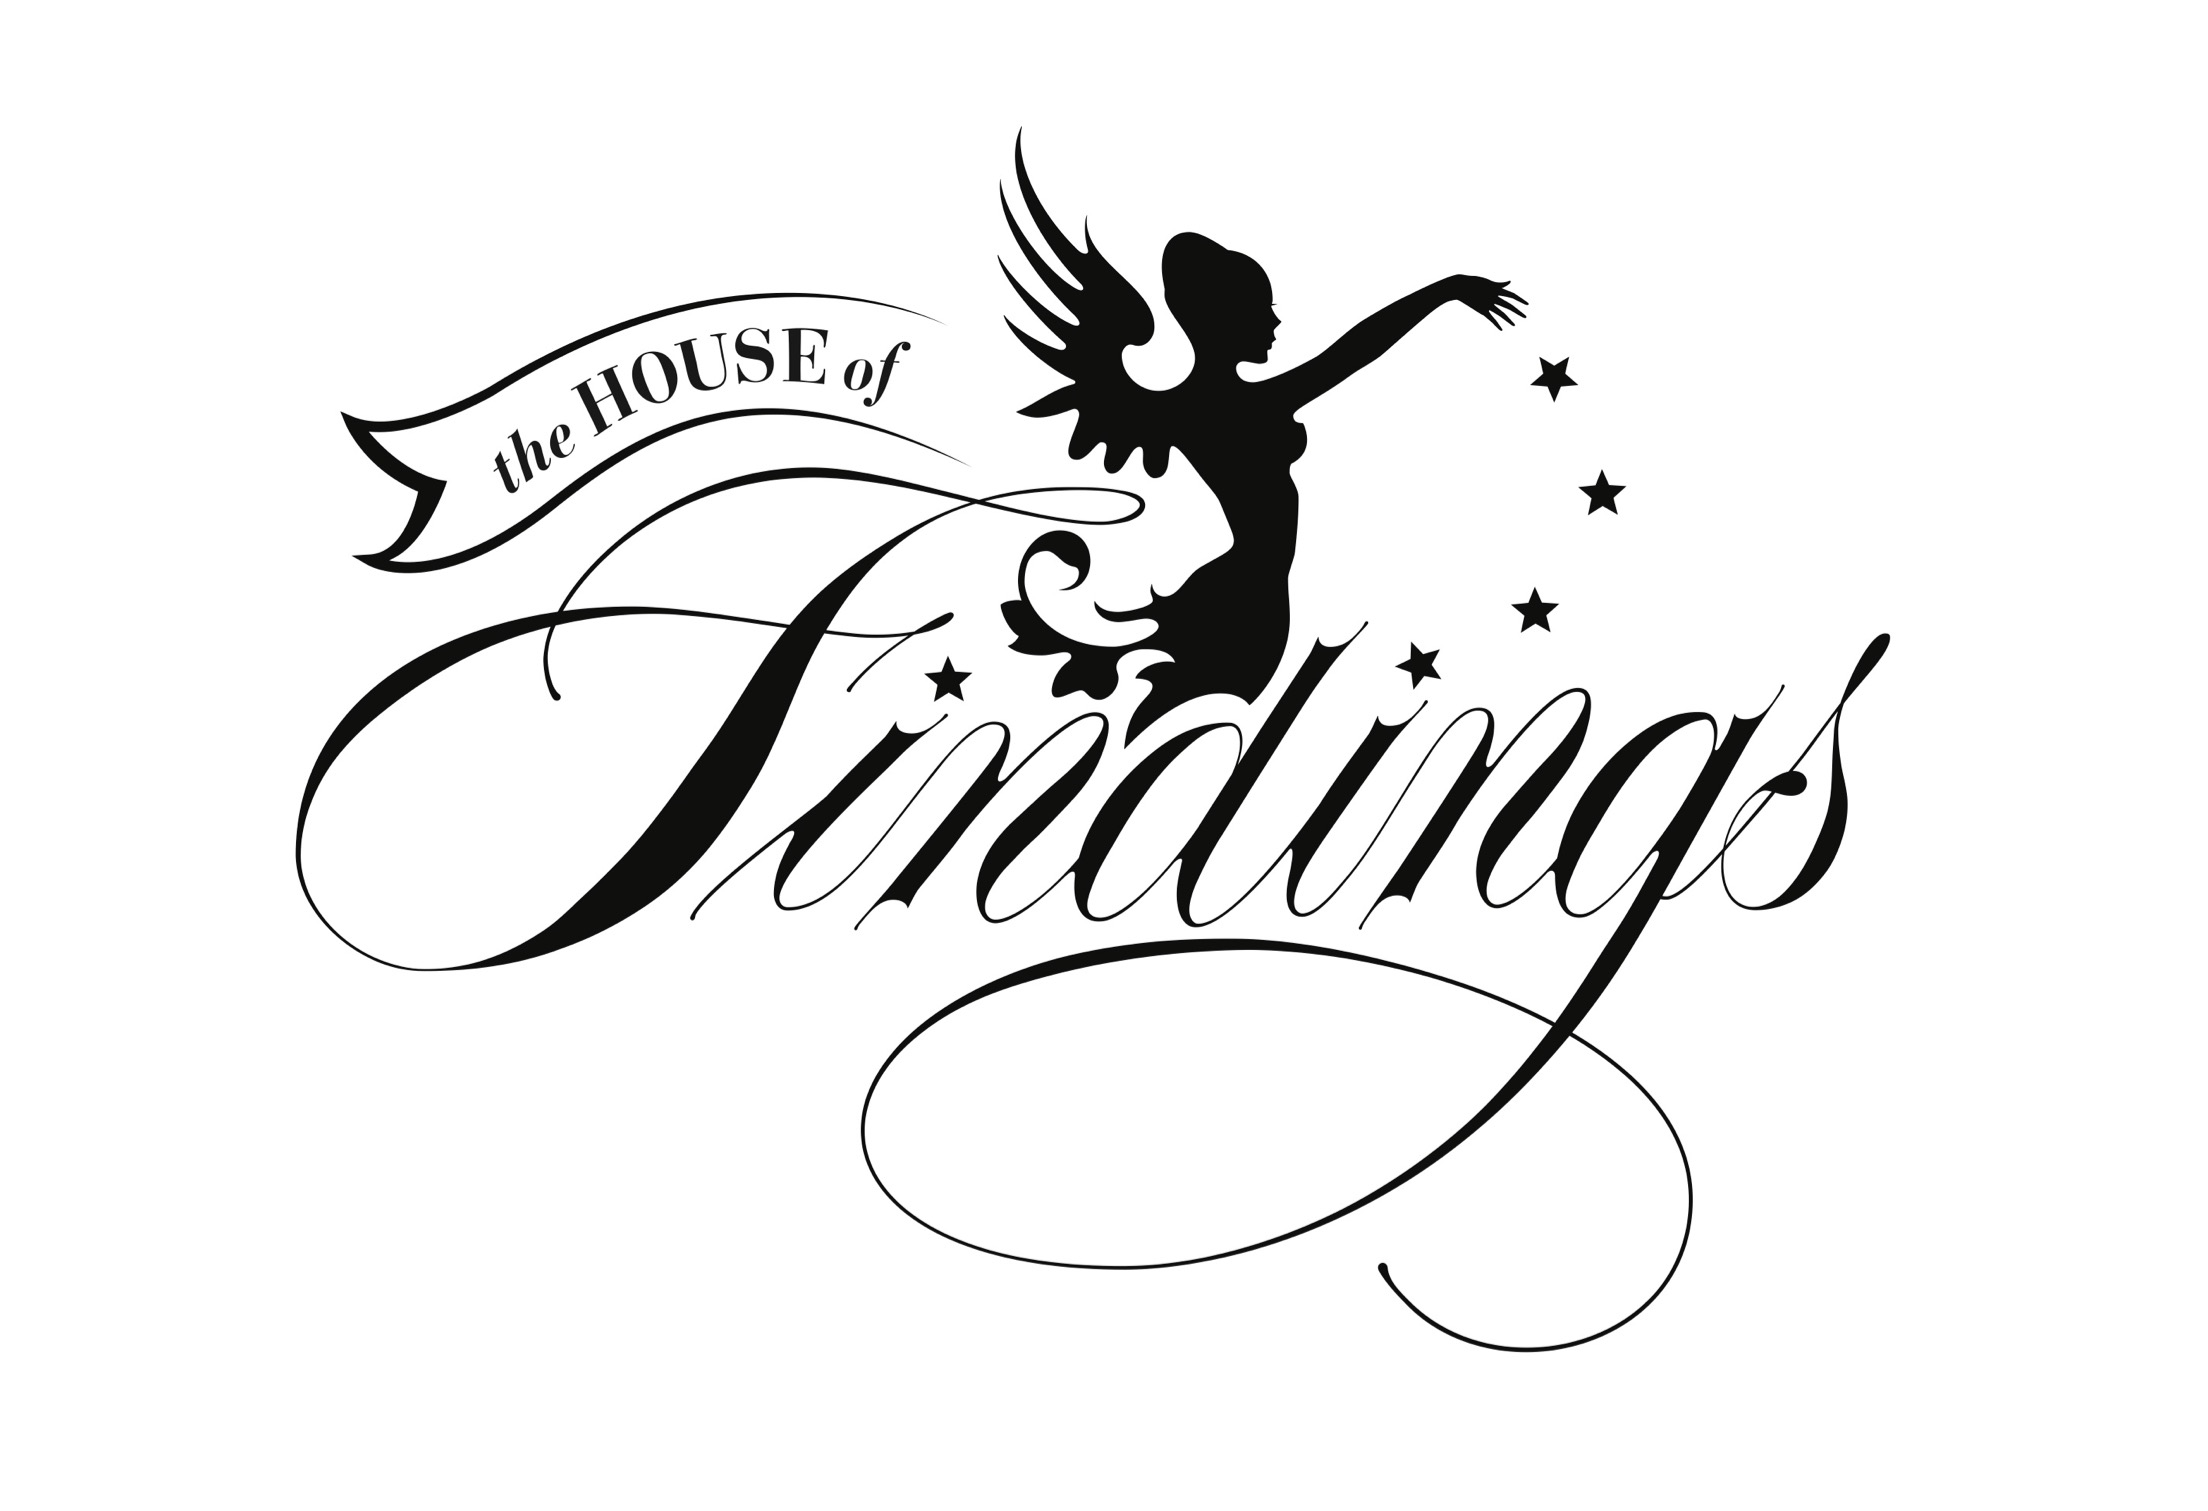 House of Findings logo